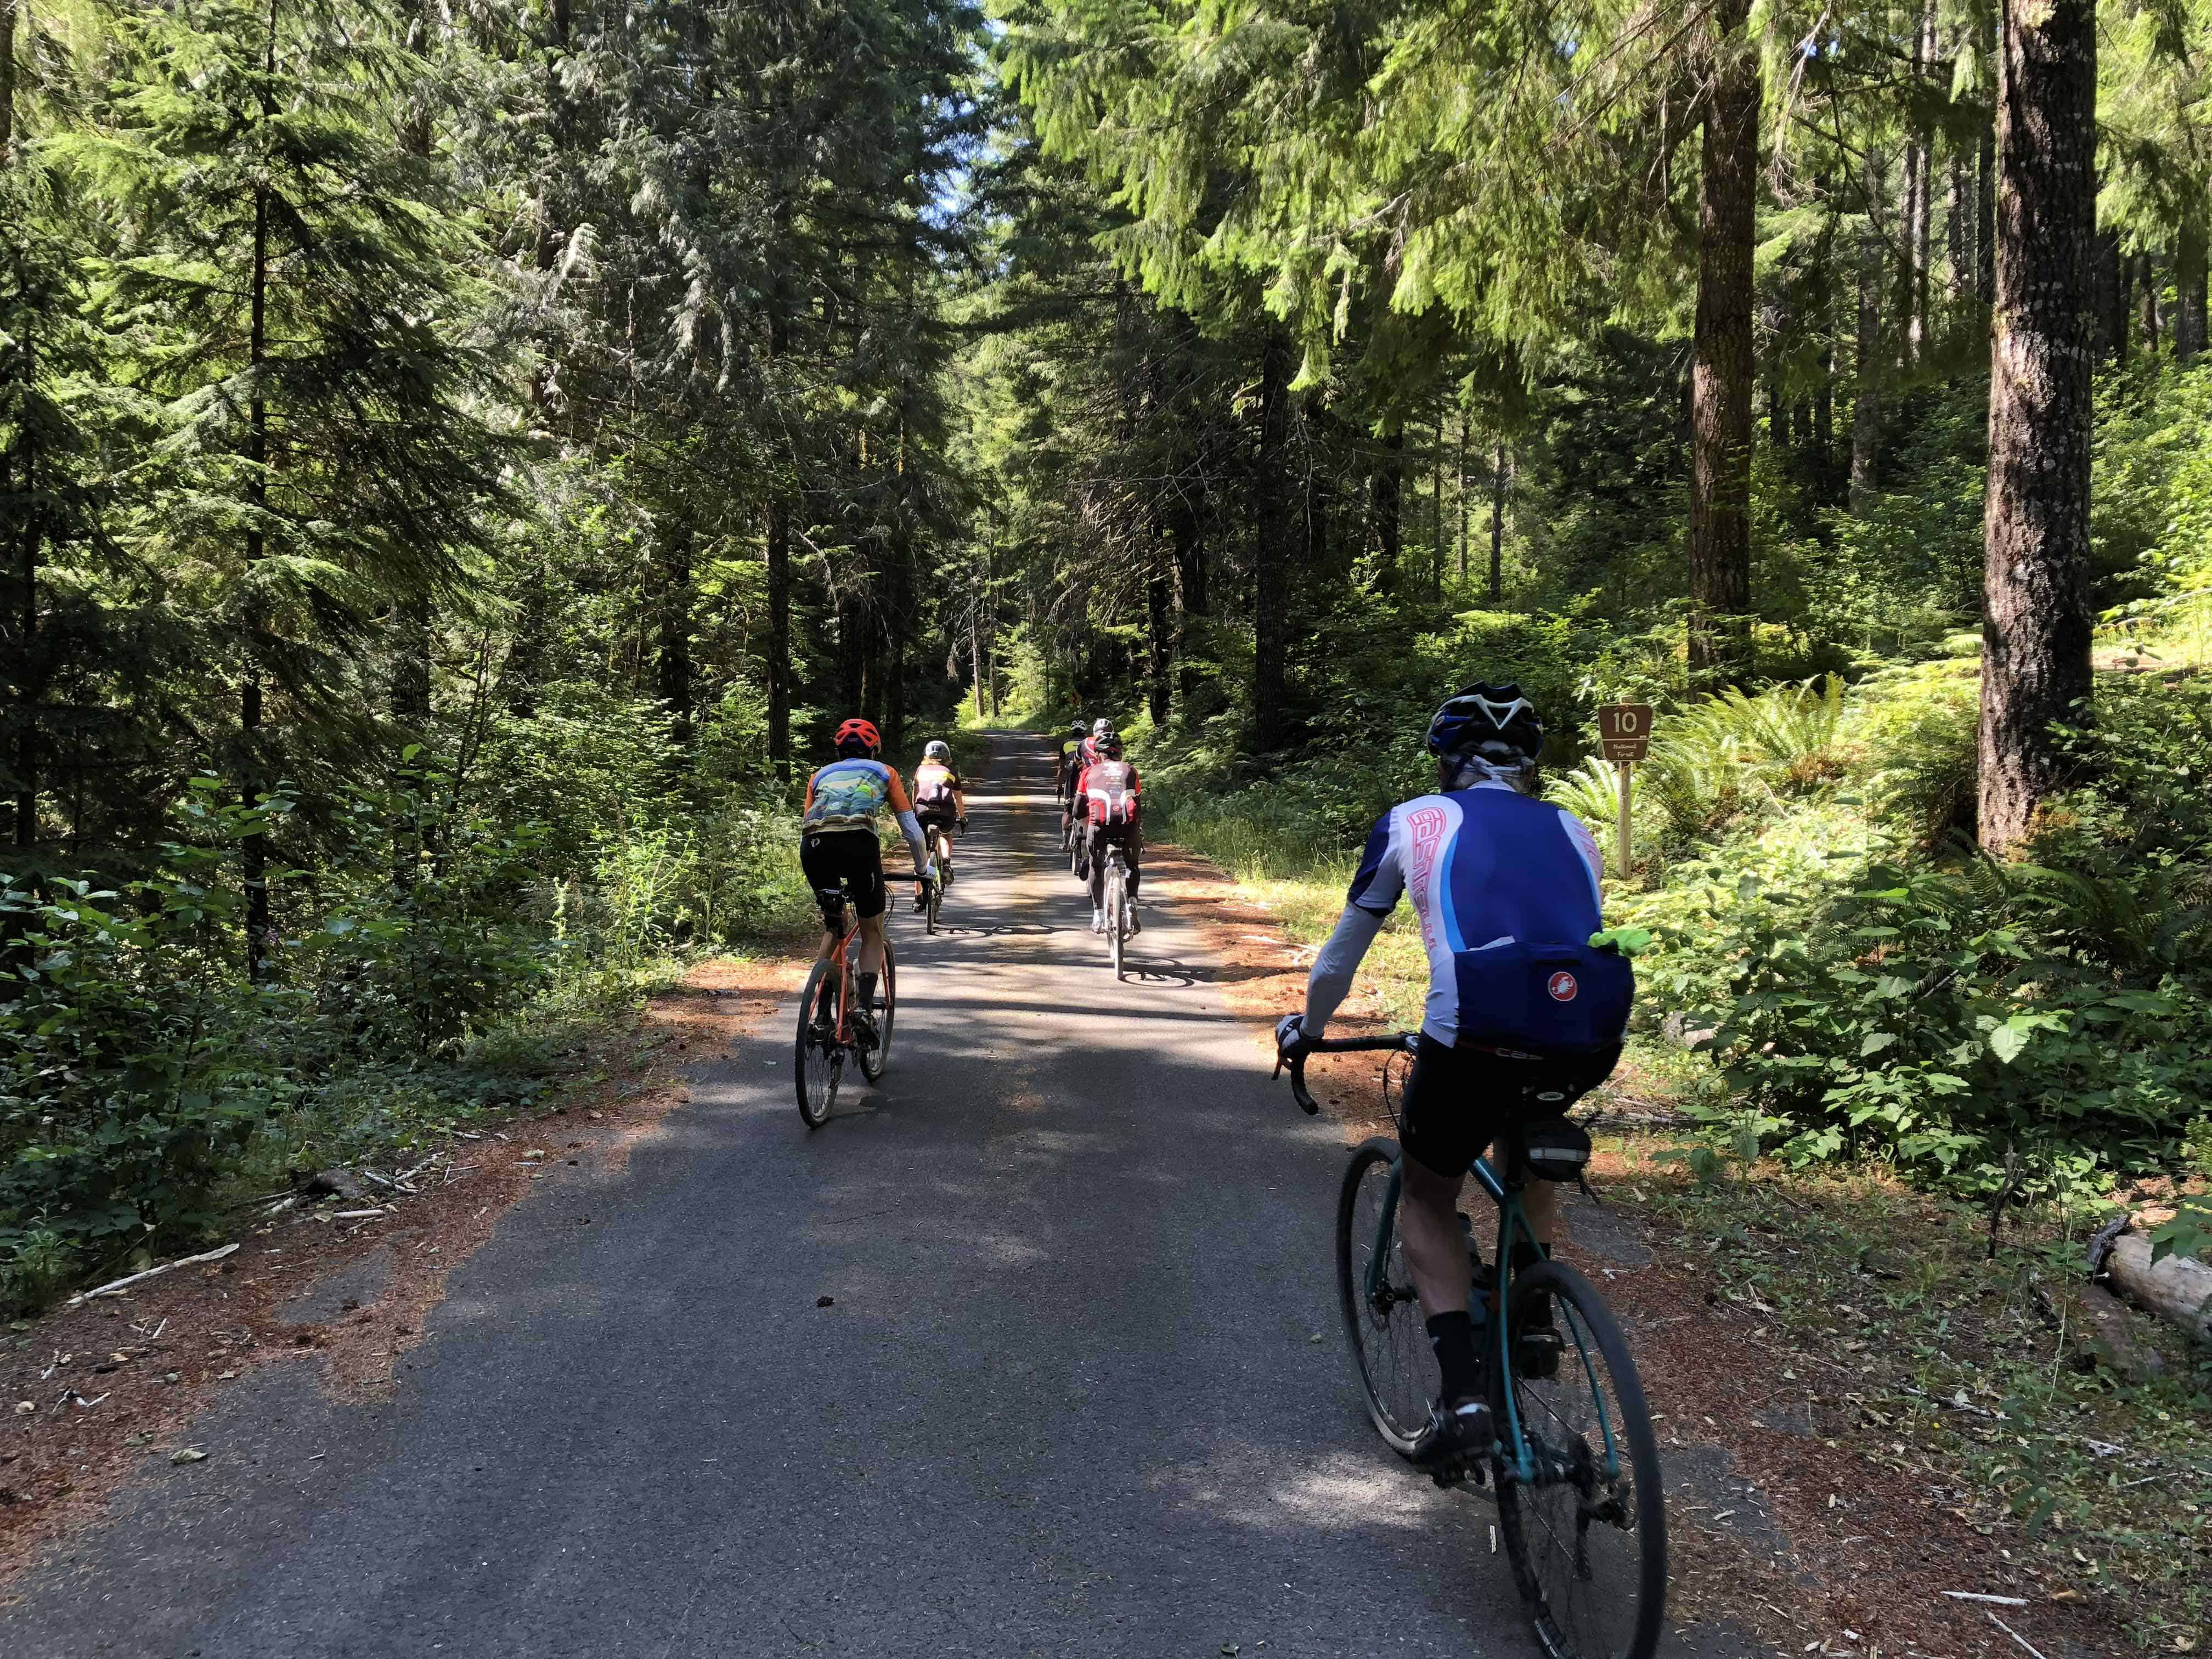 Two riders on Upper Blowout Road, Willamette National Forest